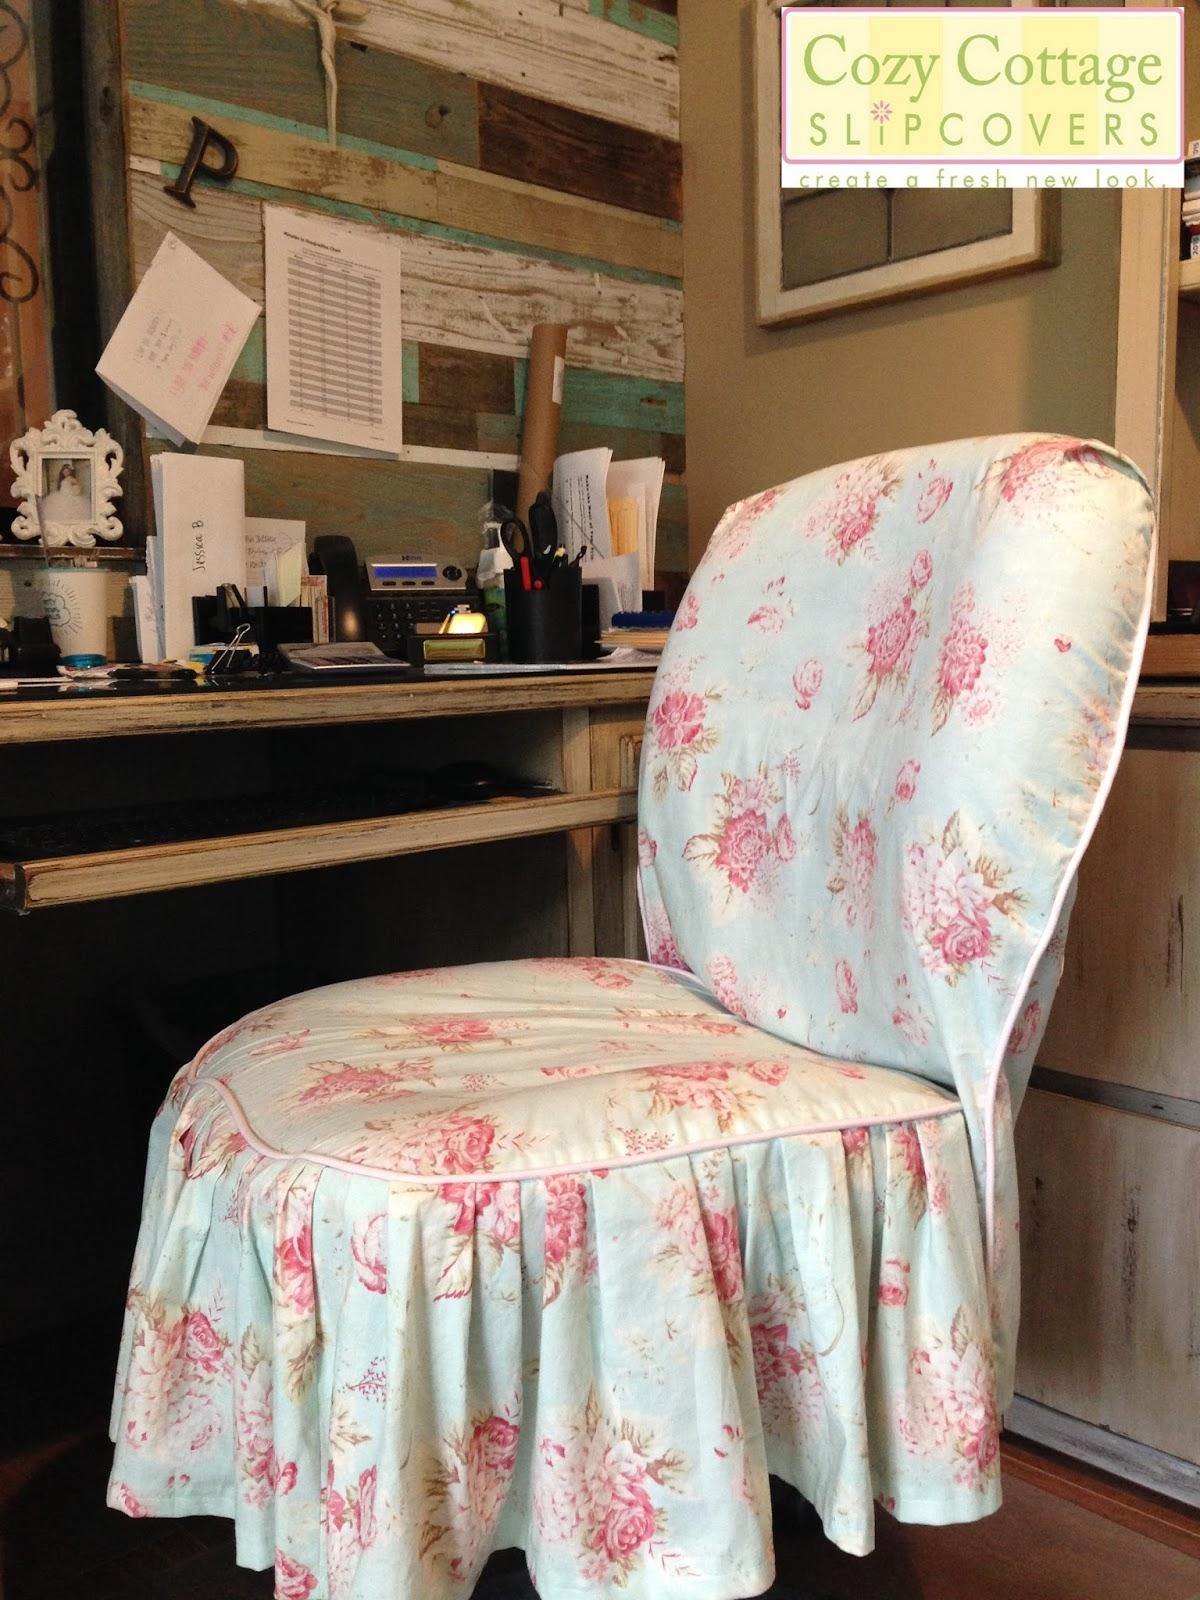 Cozy Cottage Slipcovers: Shabby Chic Texas Style In The Office Throughout Shabby Slipcovers (View 9 of 20)